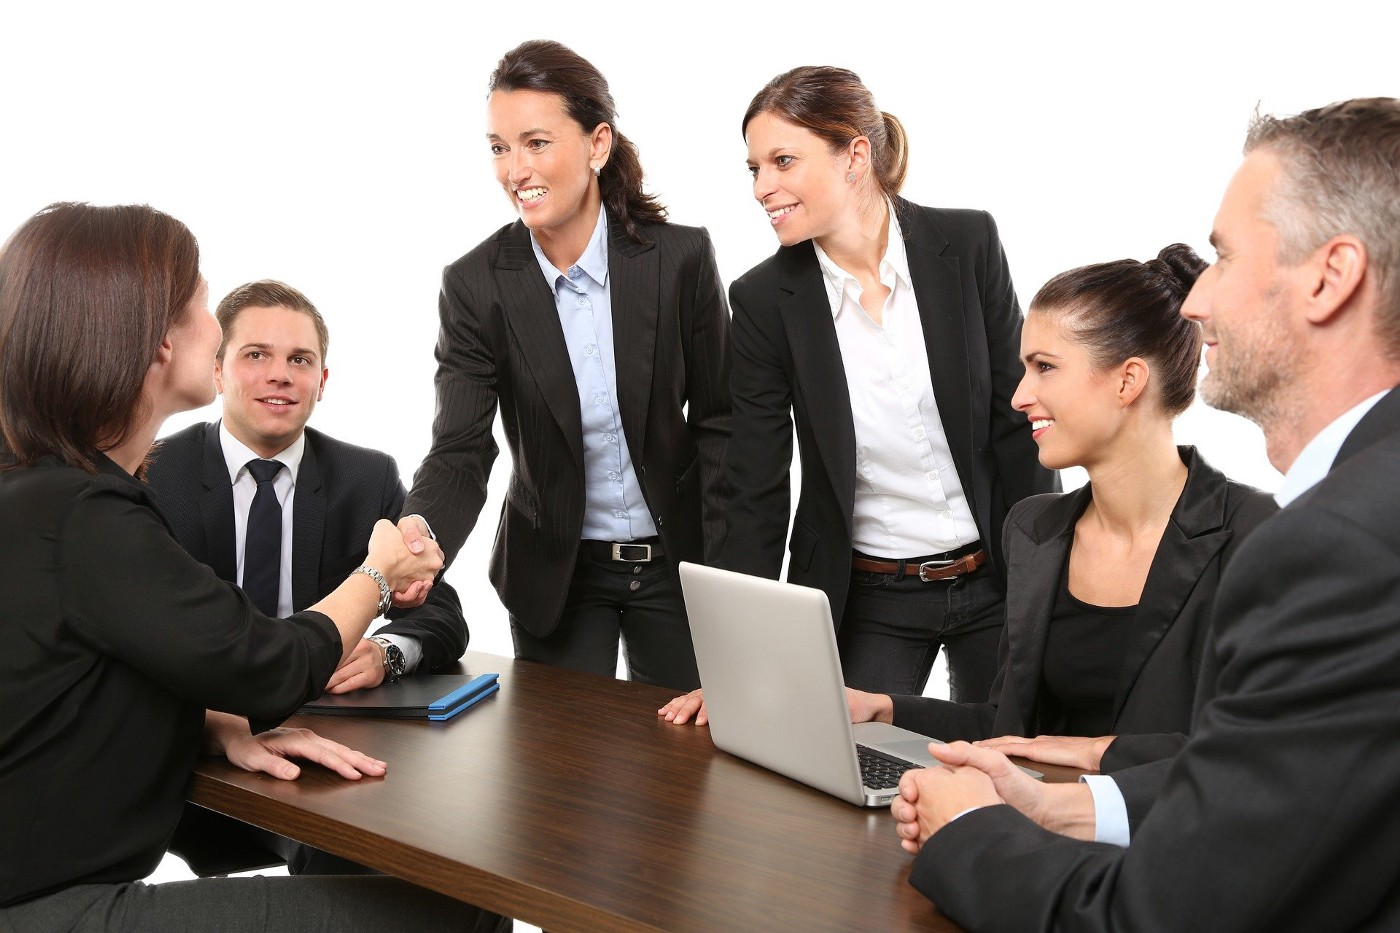 Interview Success Tips